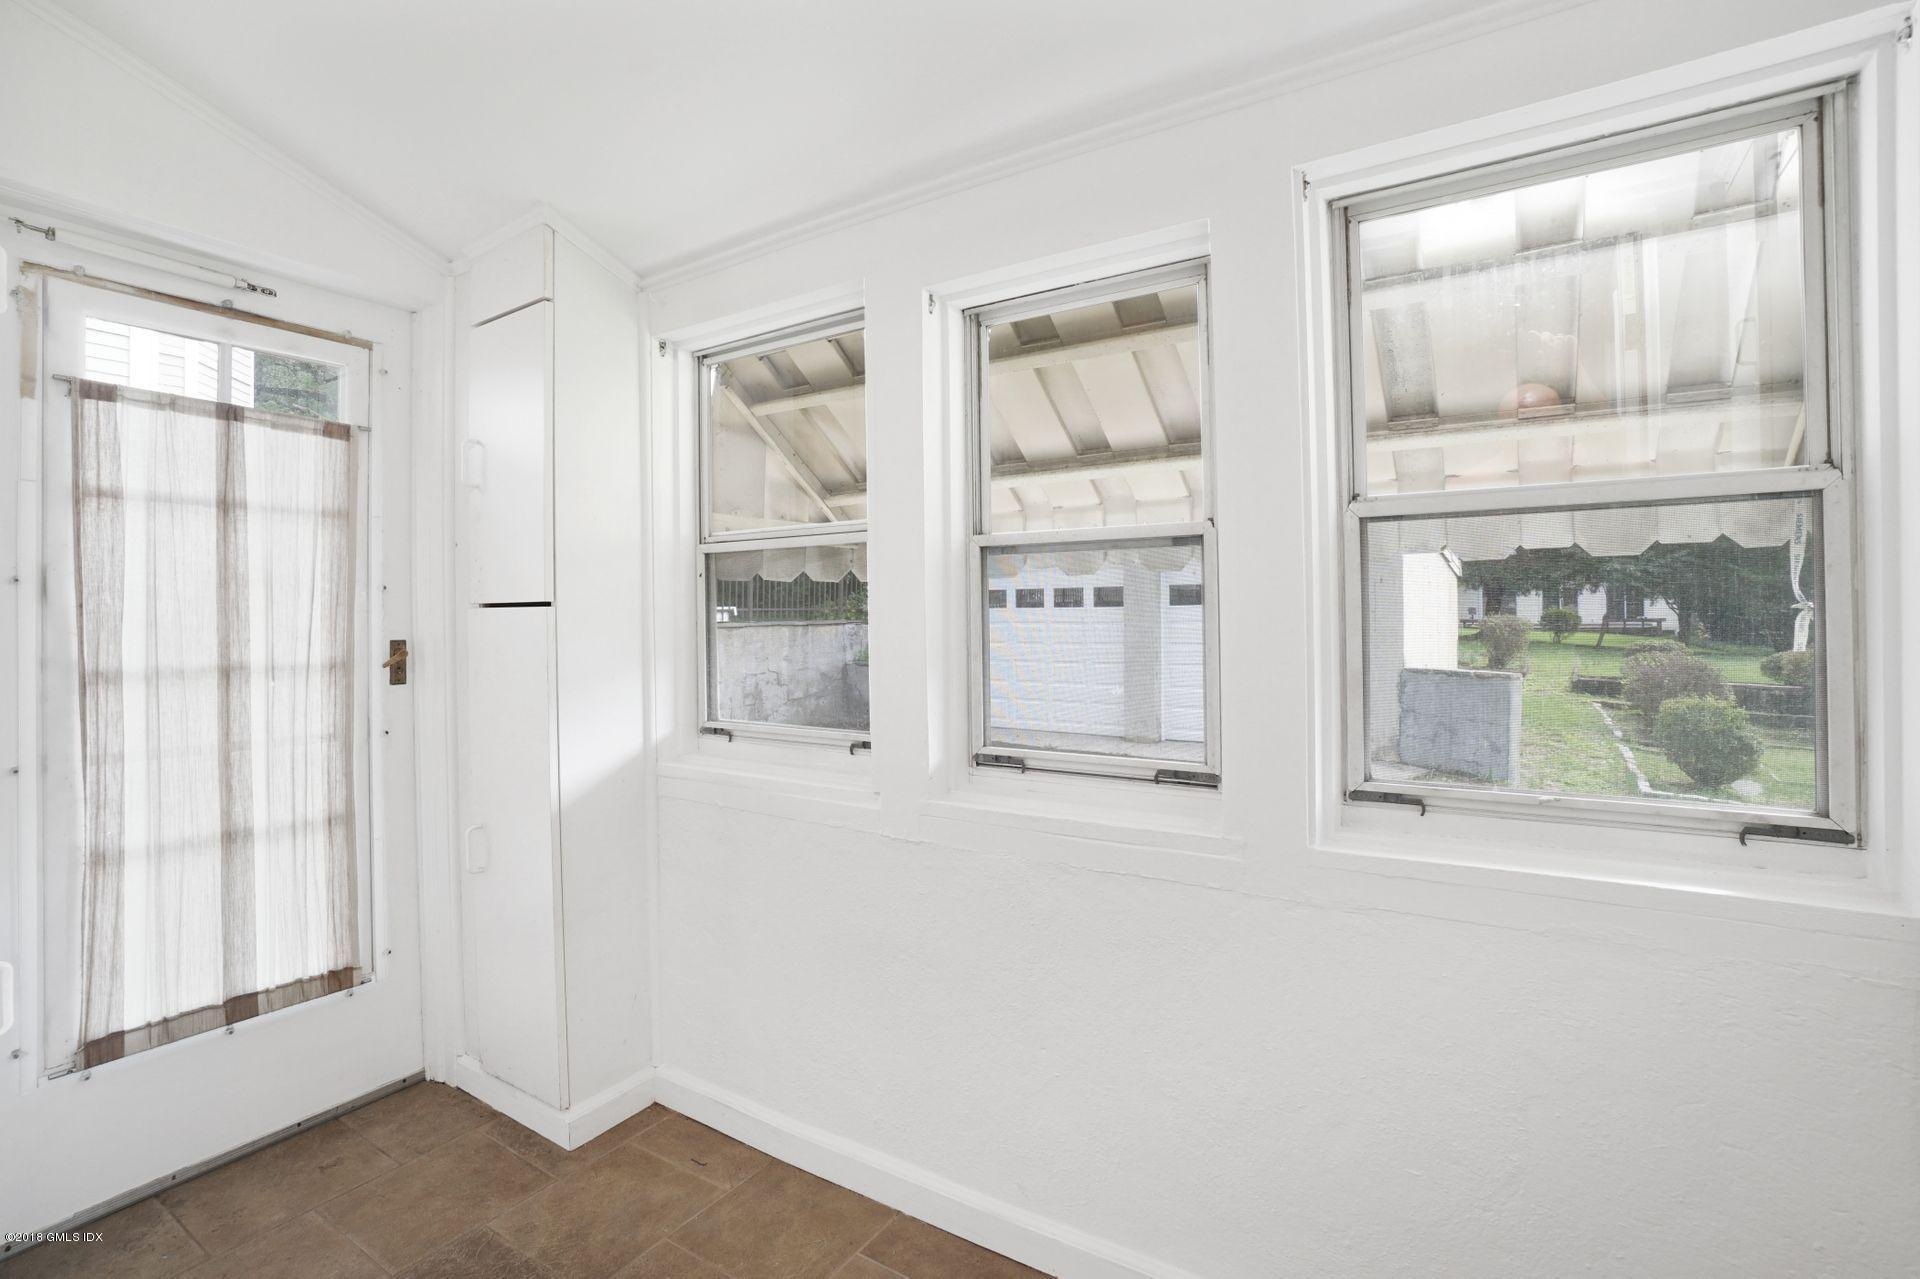 37 Hassake Road,Old Greenwich,Connecticut 06870,3 Bedrooms Bedrooms,1 BathroomBathrooms,Single family,Hassake,106606